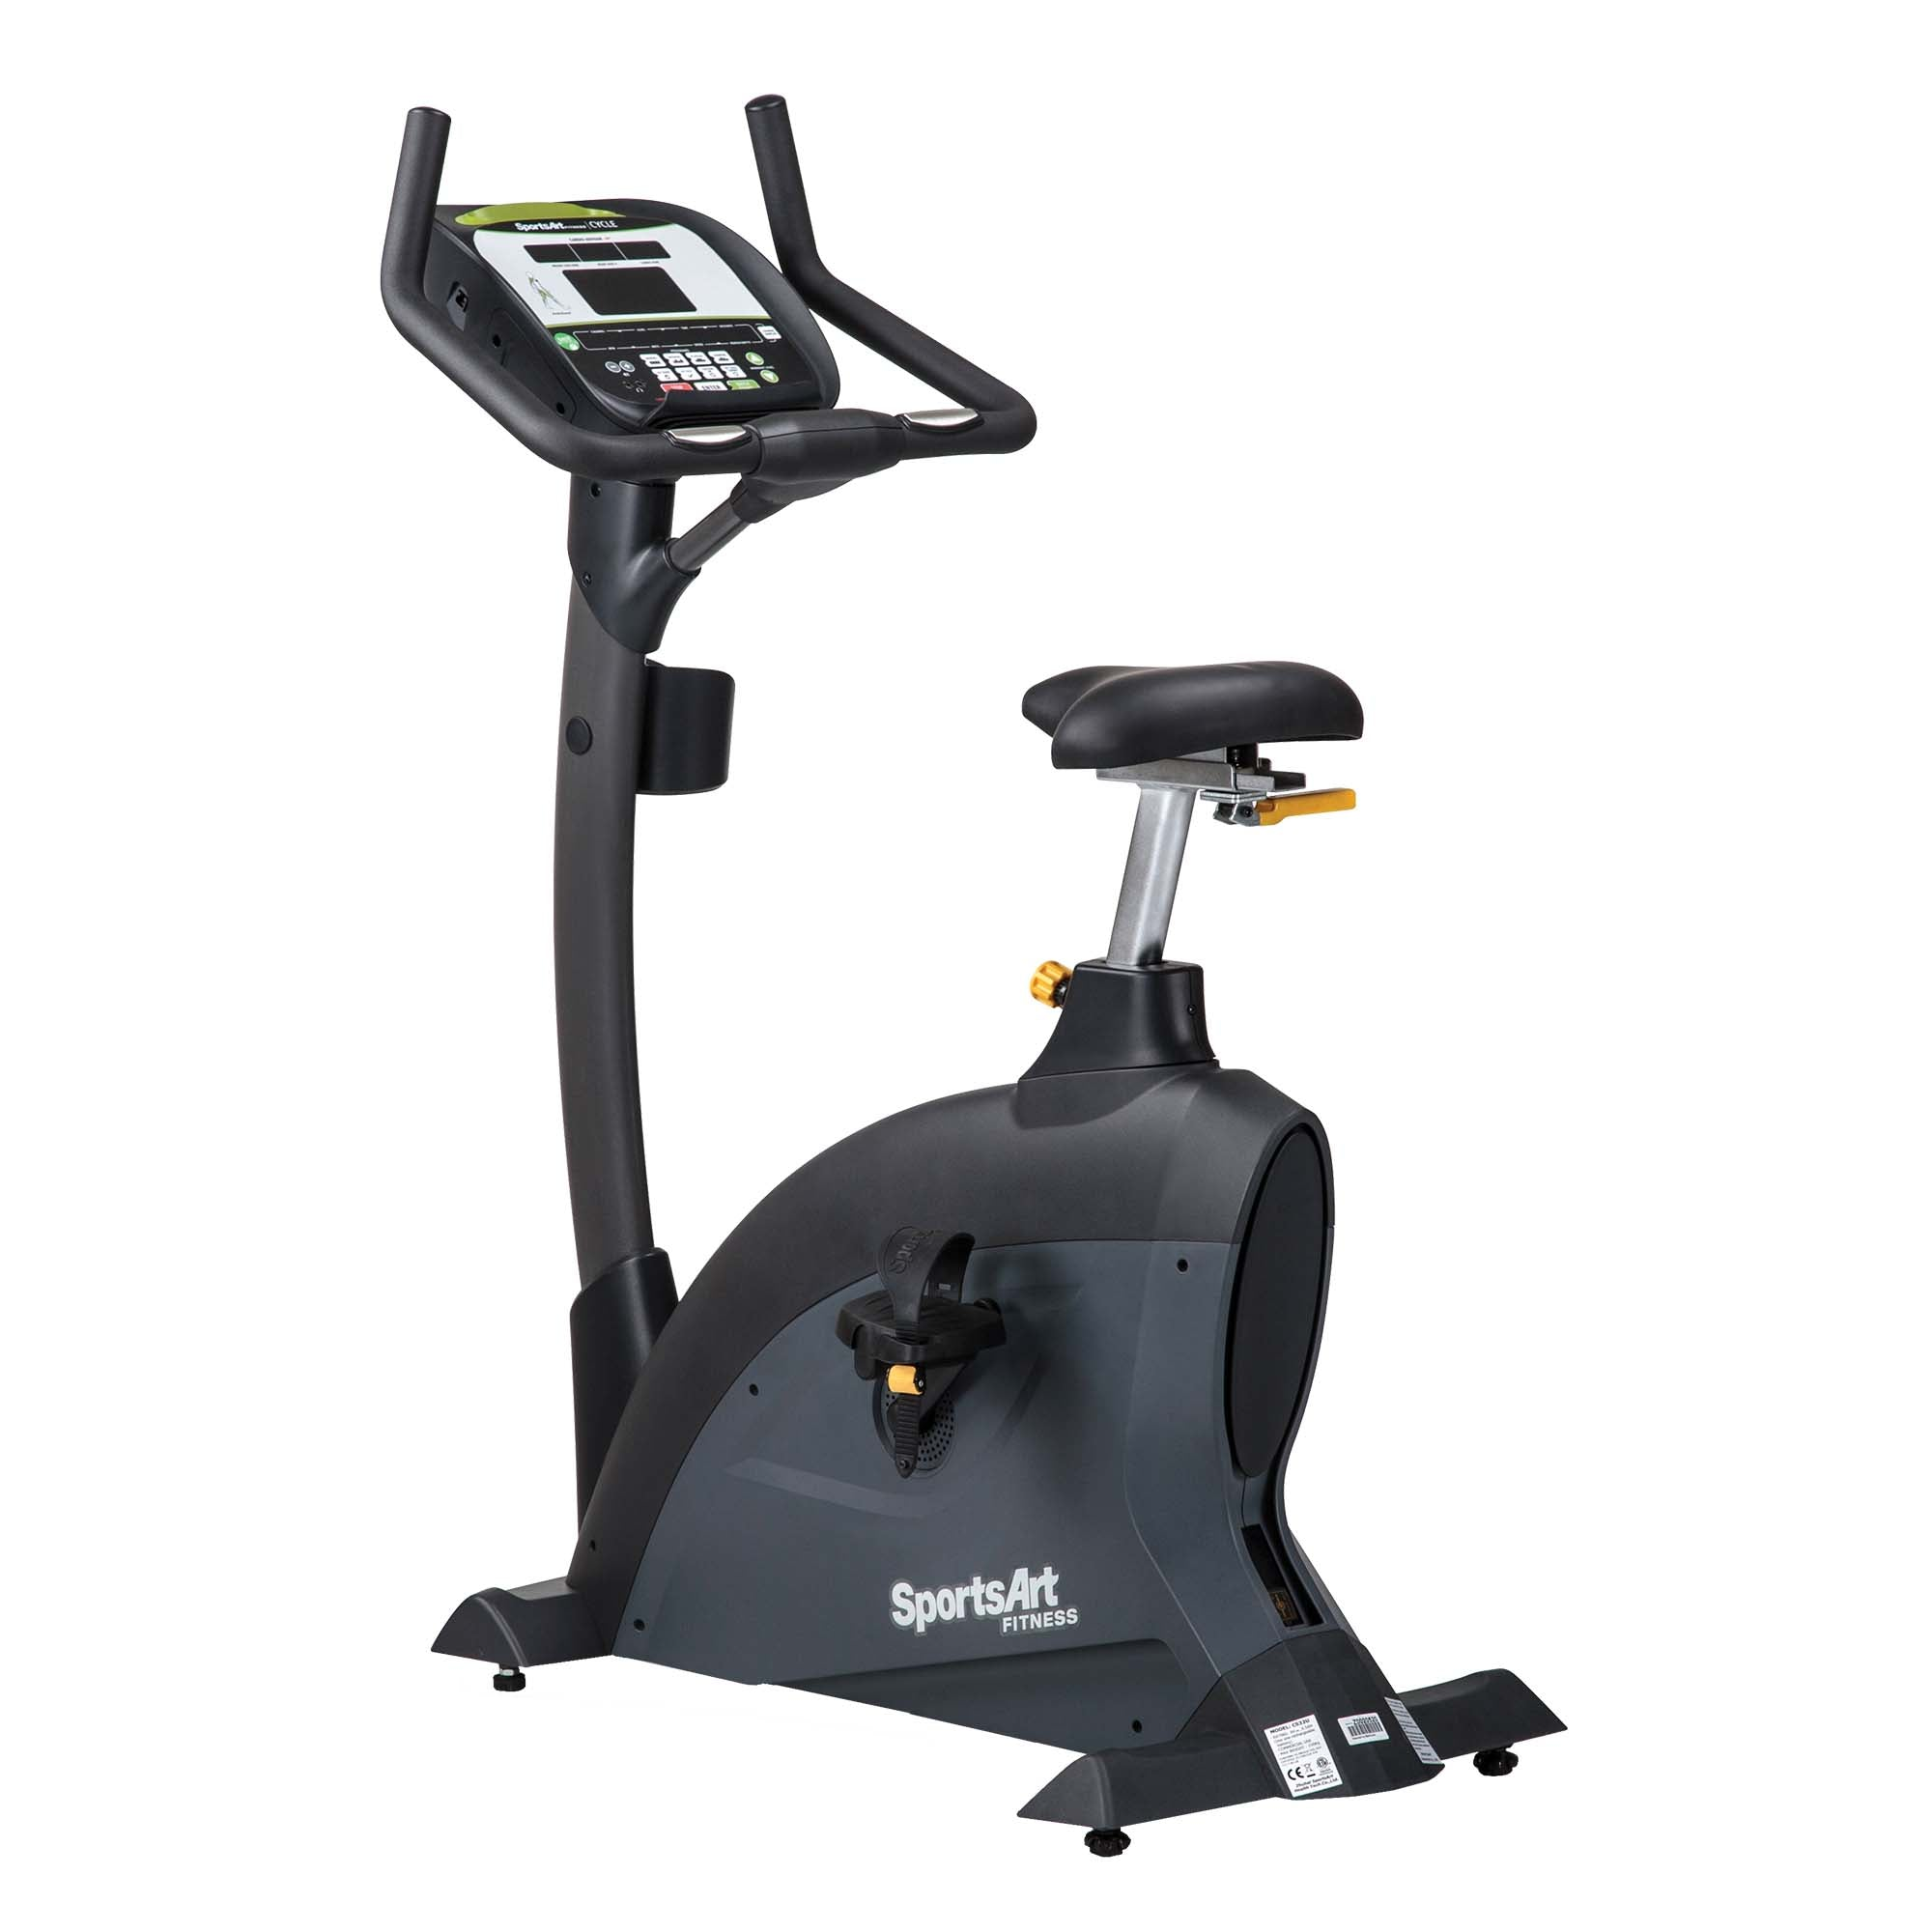 SportsArt G545U-900MHZ Performance Series ECO-POWR Upright Cycle